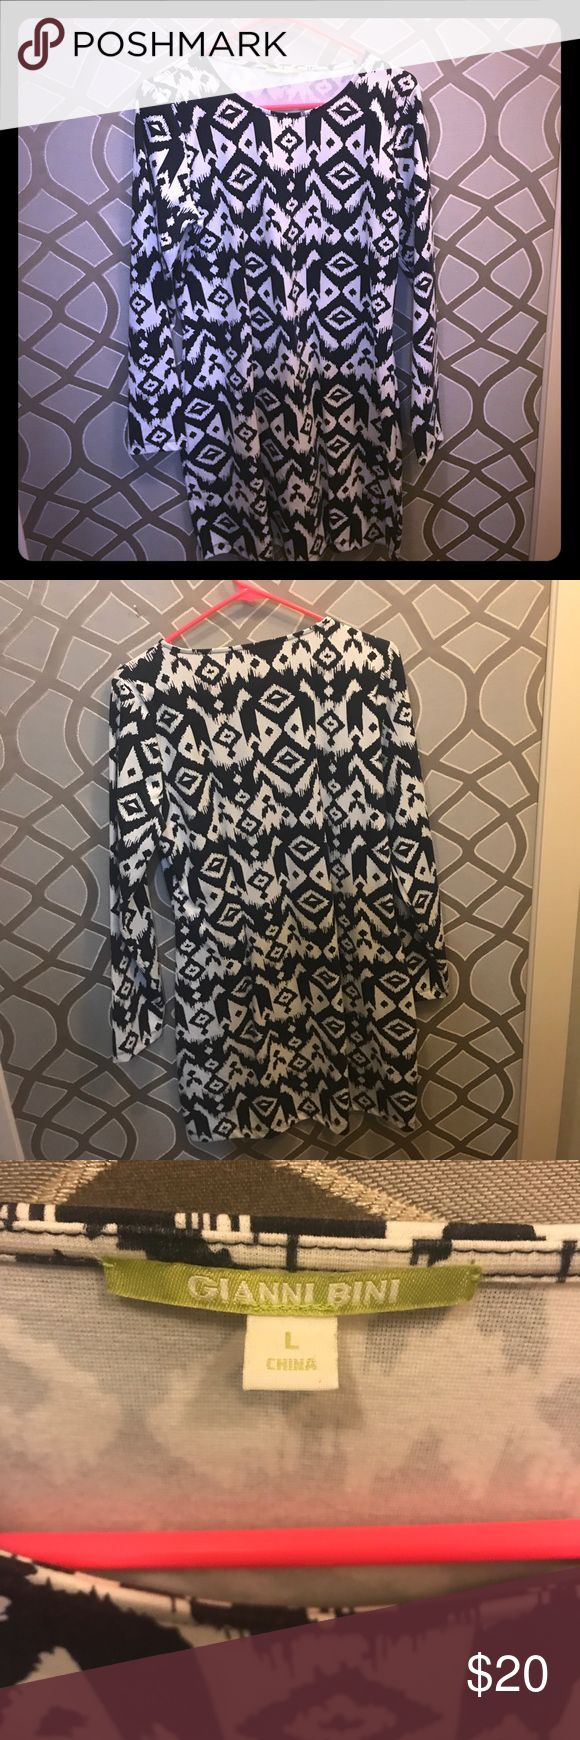 Gianni Bini tribal print dress! Super cute white and navy tribal print dress by Gianni Bini. Size large. Like new condition. Great with leggings and boots for fall! Gianni Bini Dresses